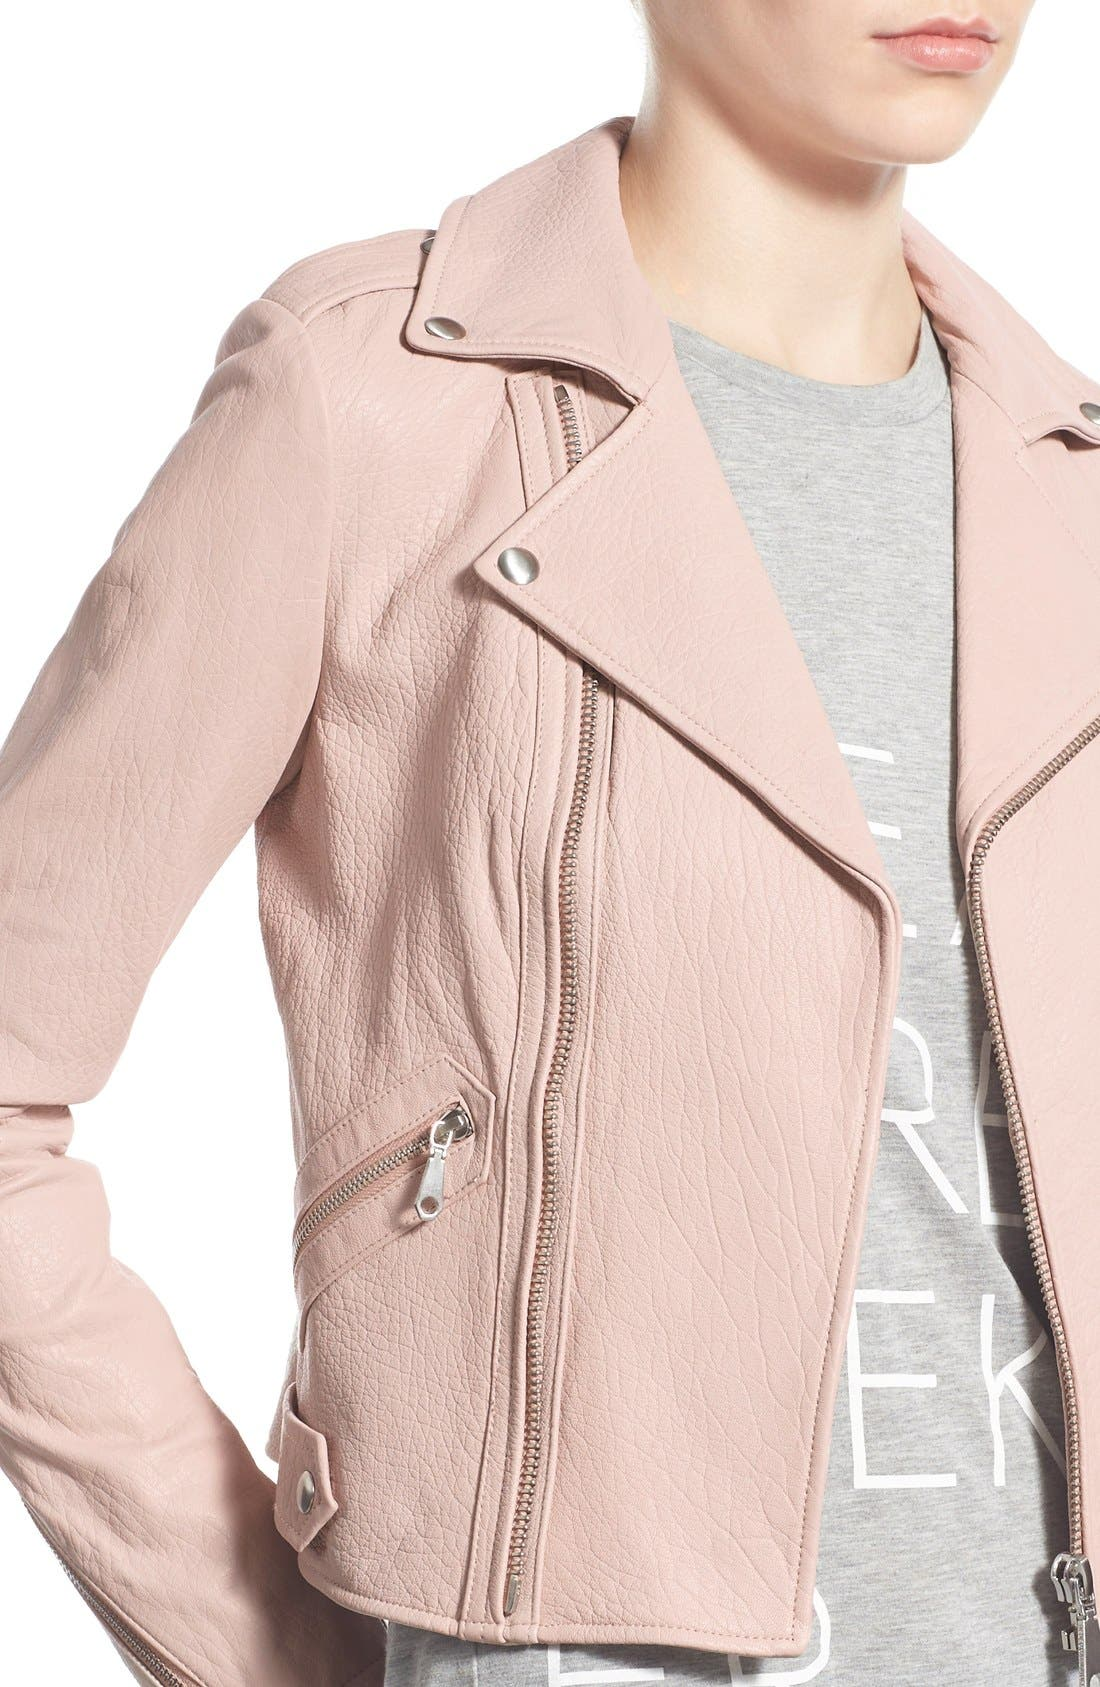 Pebble Leather Jacket,                             Alternate thumbnail 4, color,                             Nude Pink